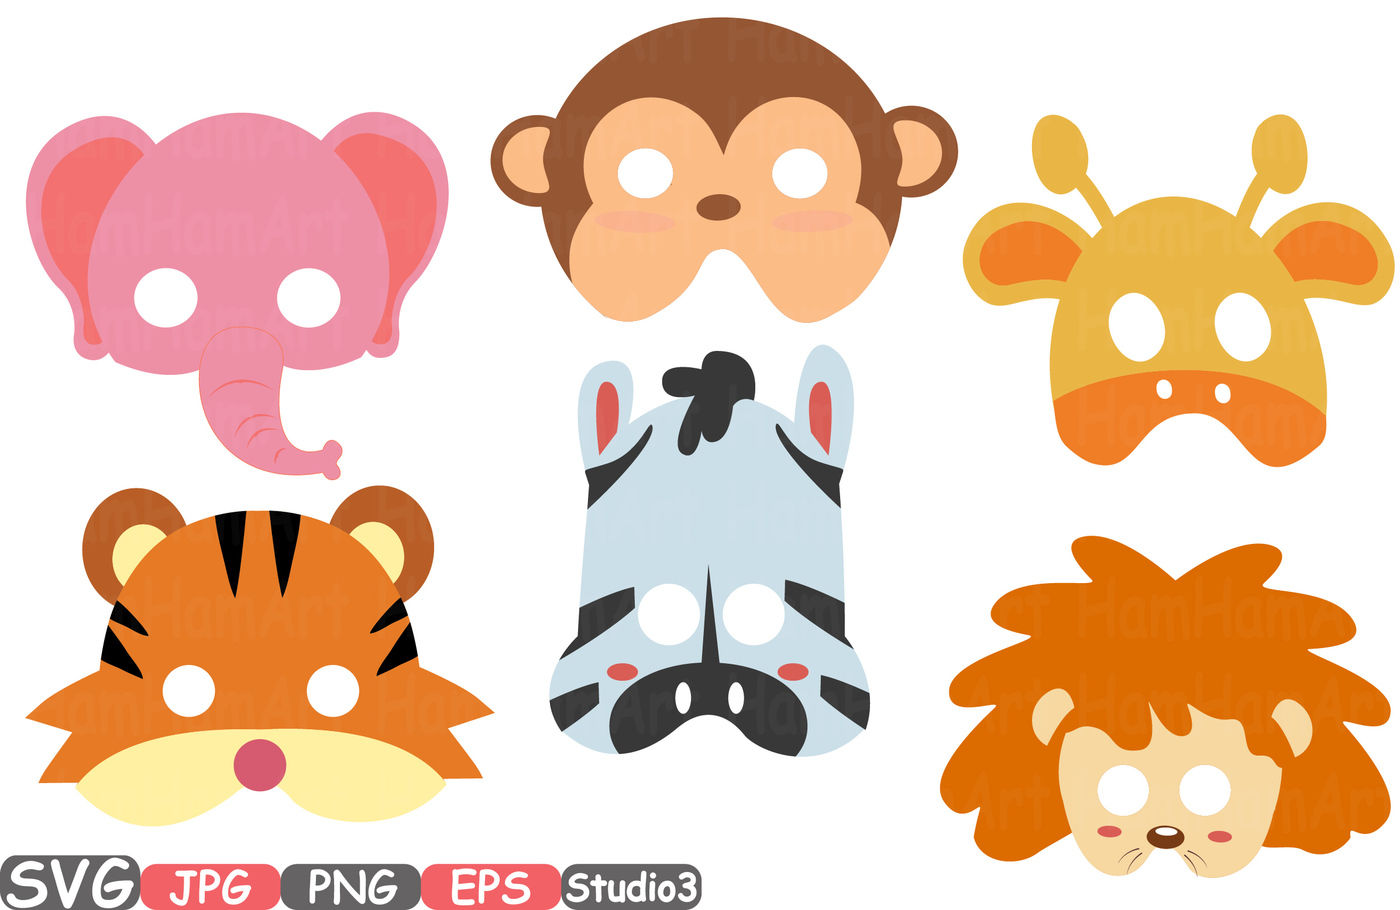 Props Africa Safari Wilderness Mask Booth Party Birthday Silhouette Svg Clipart Bunting Cutting Files Digital Svg Eps Png Jpg Vinyl Sale Woodland Circus Forest Mask Lion Tiger Zebra Elephant Monkey Giraffe 208s